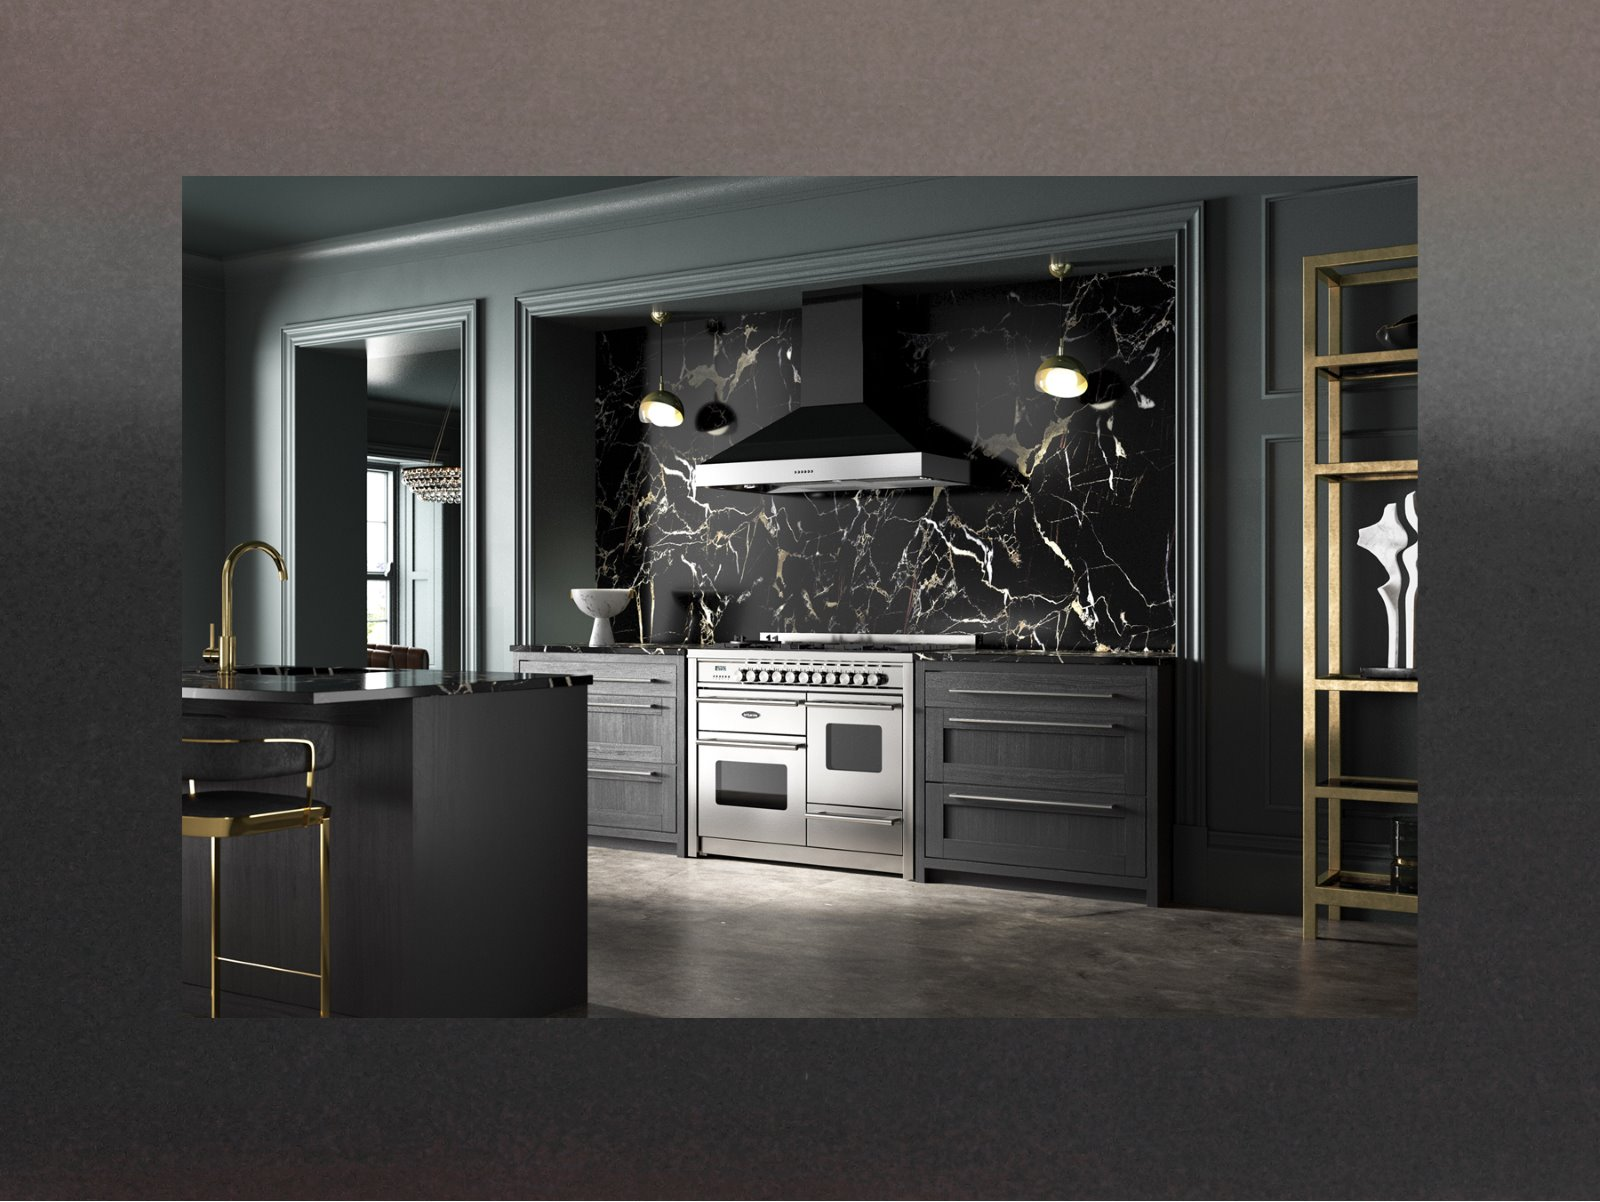 moody kitchen design CGI